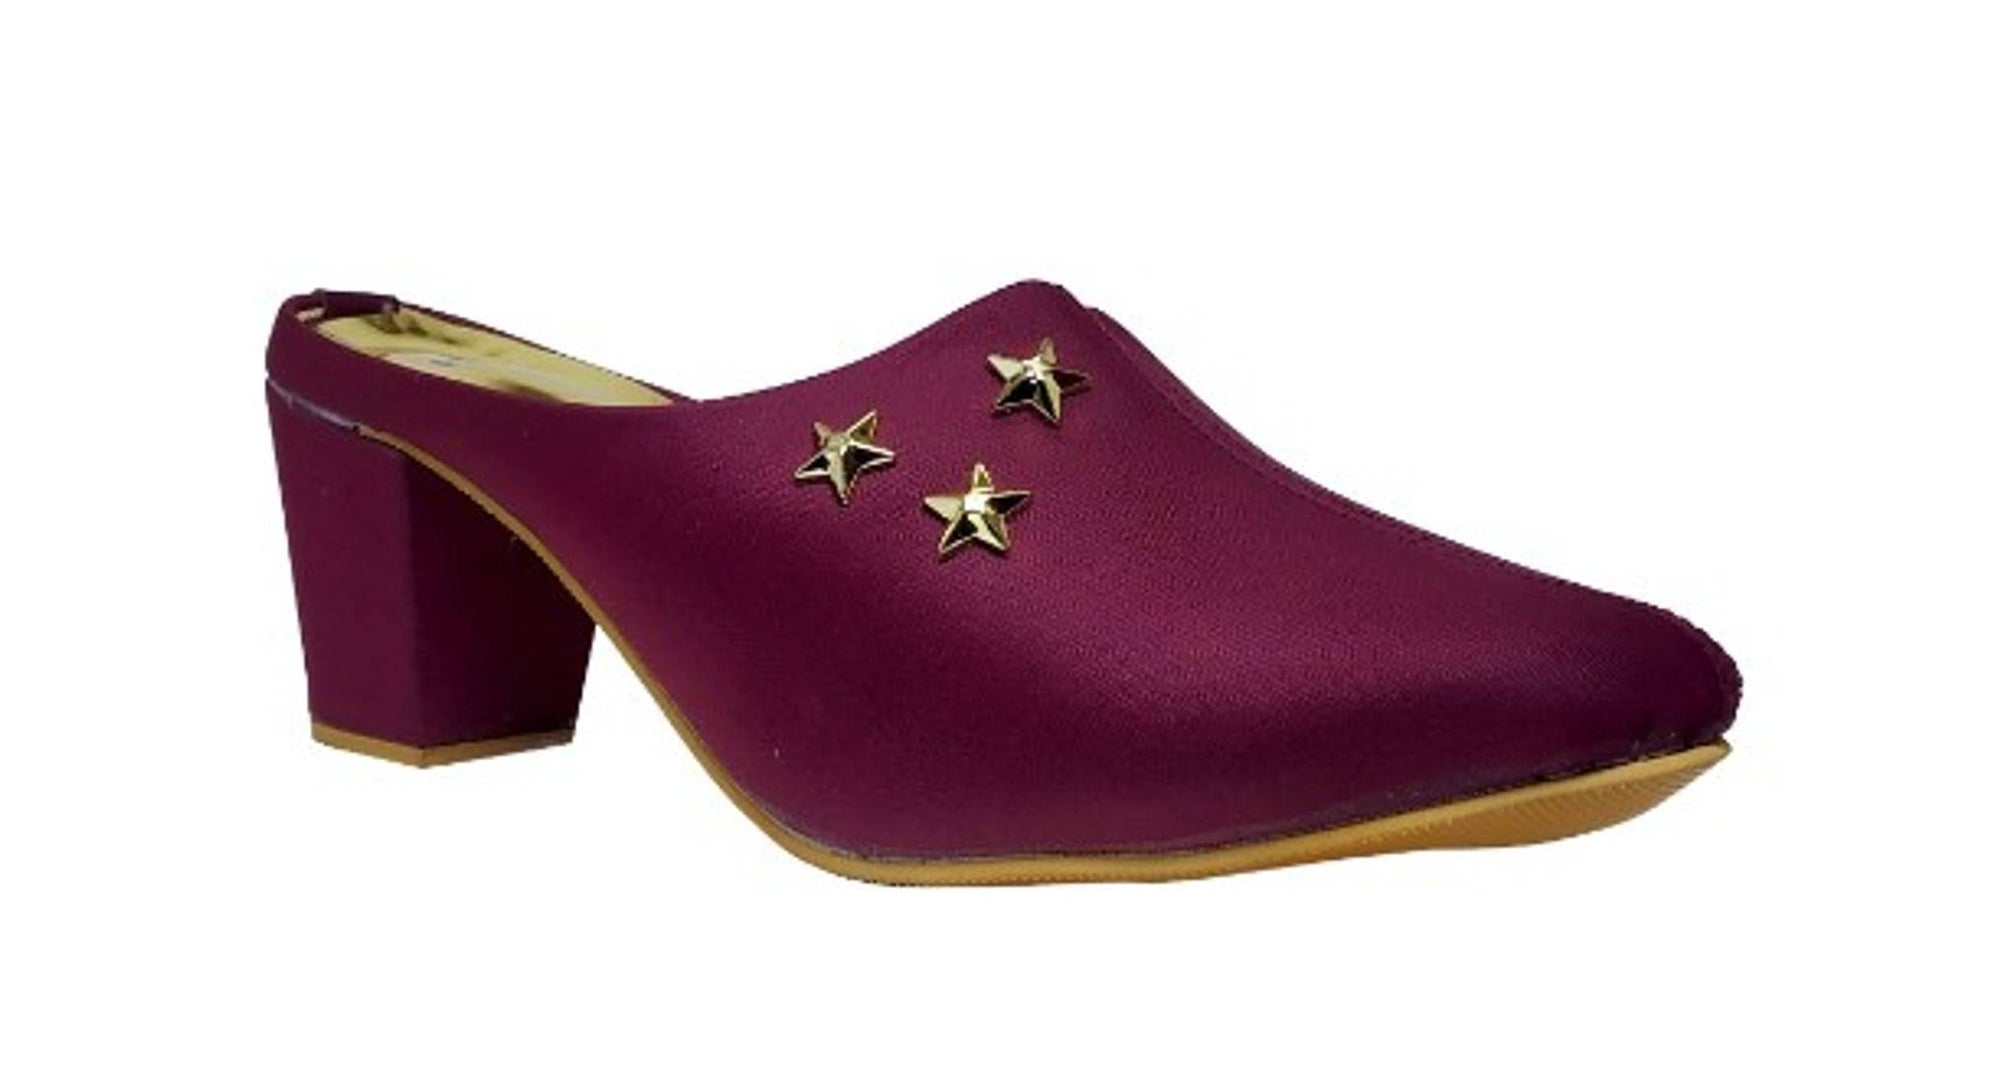 Stylish Synthetic Leather Maroon Heeled Mules For Women